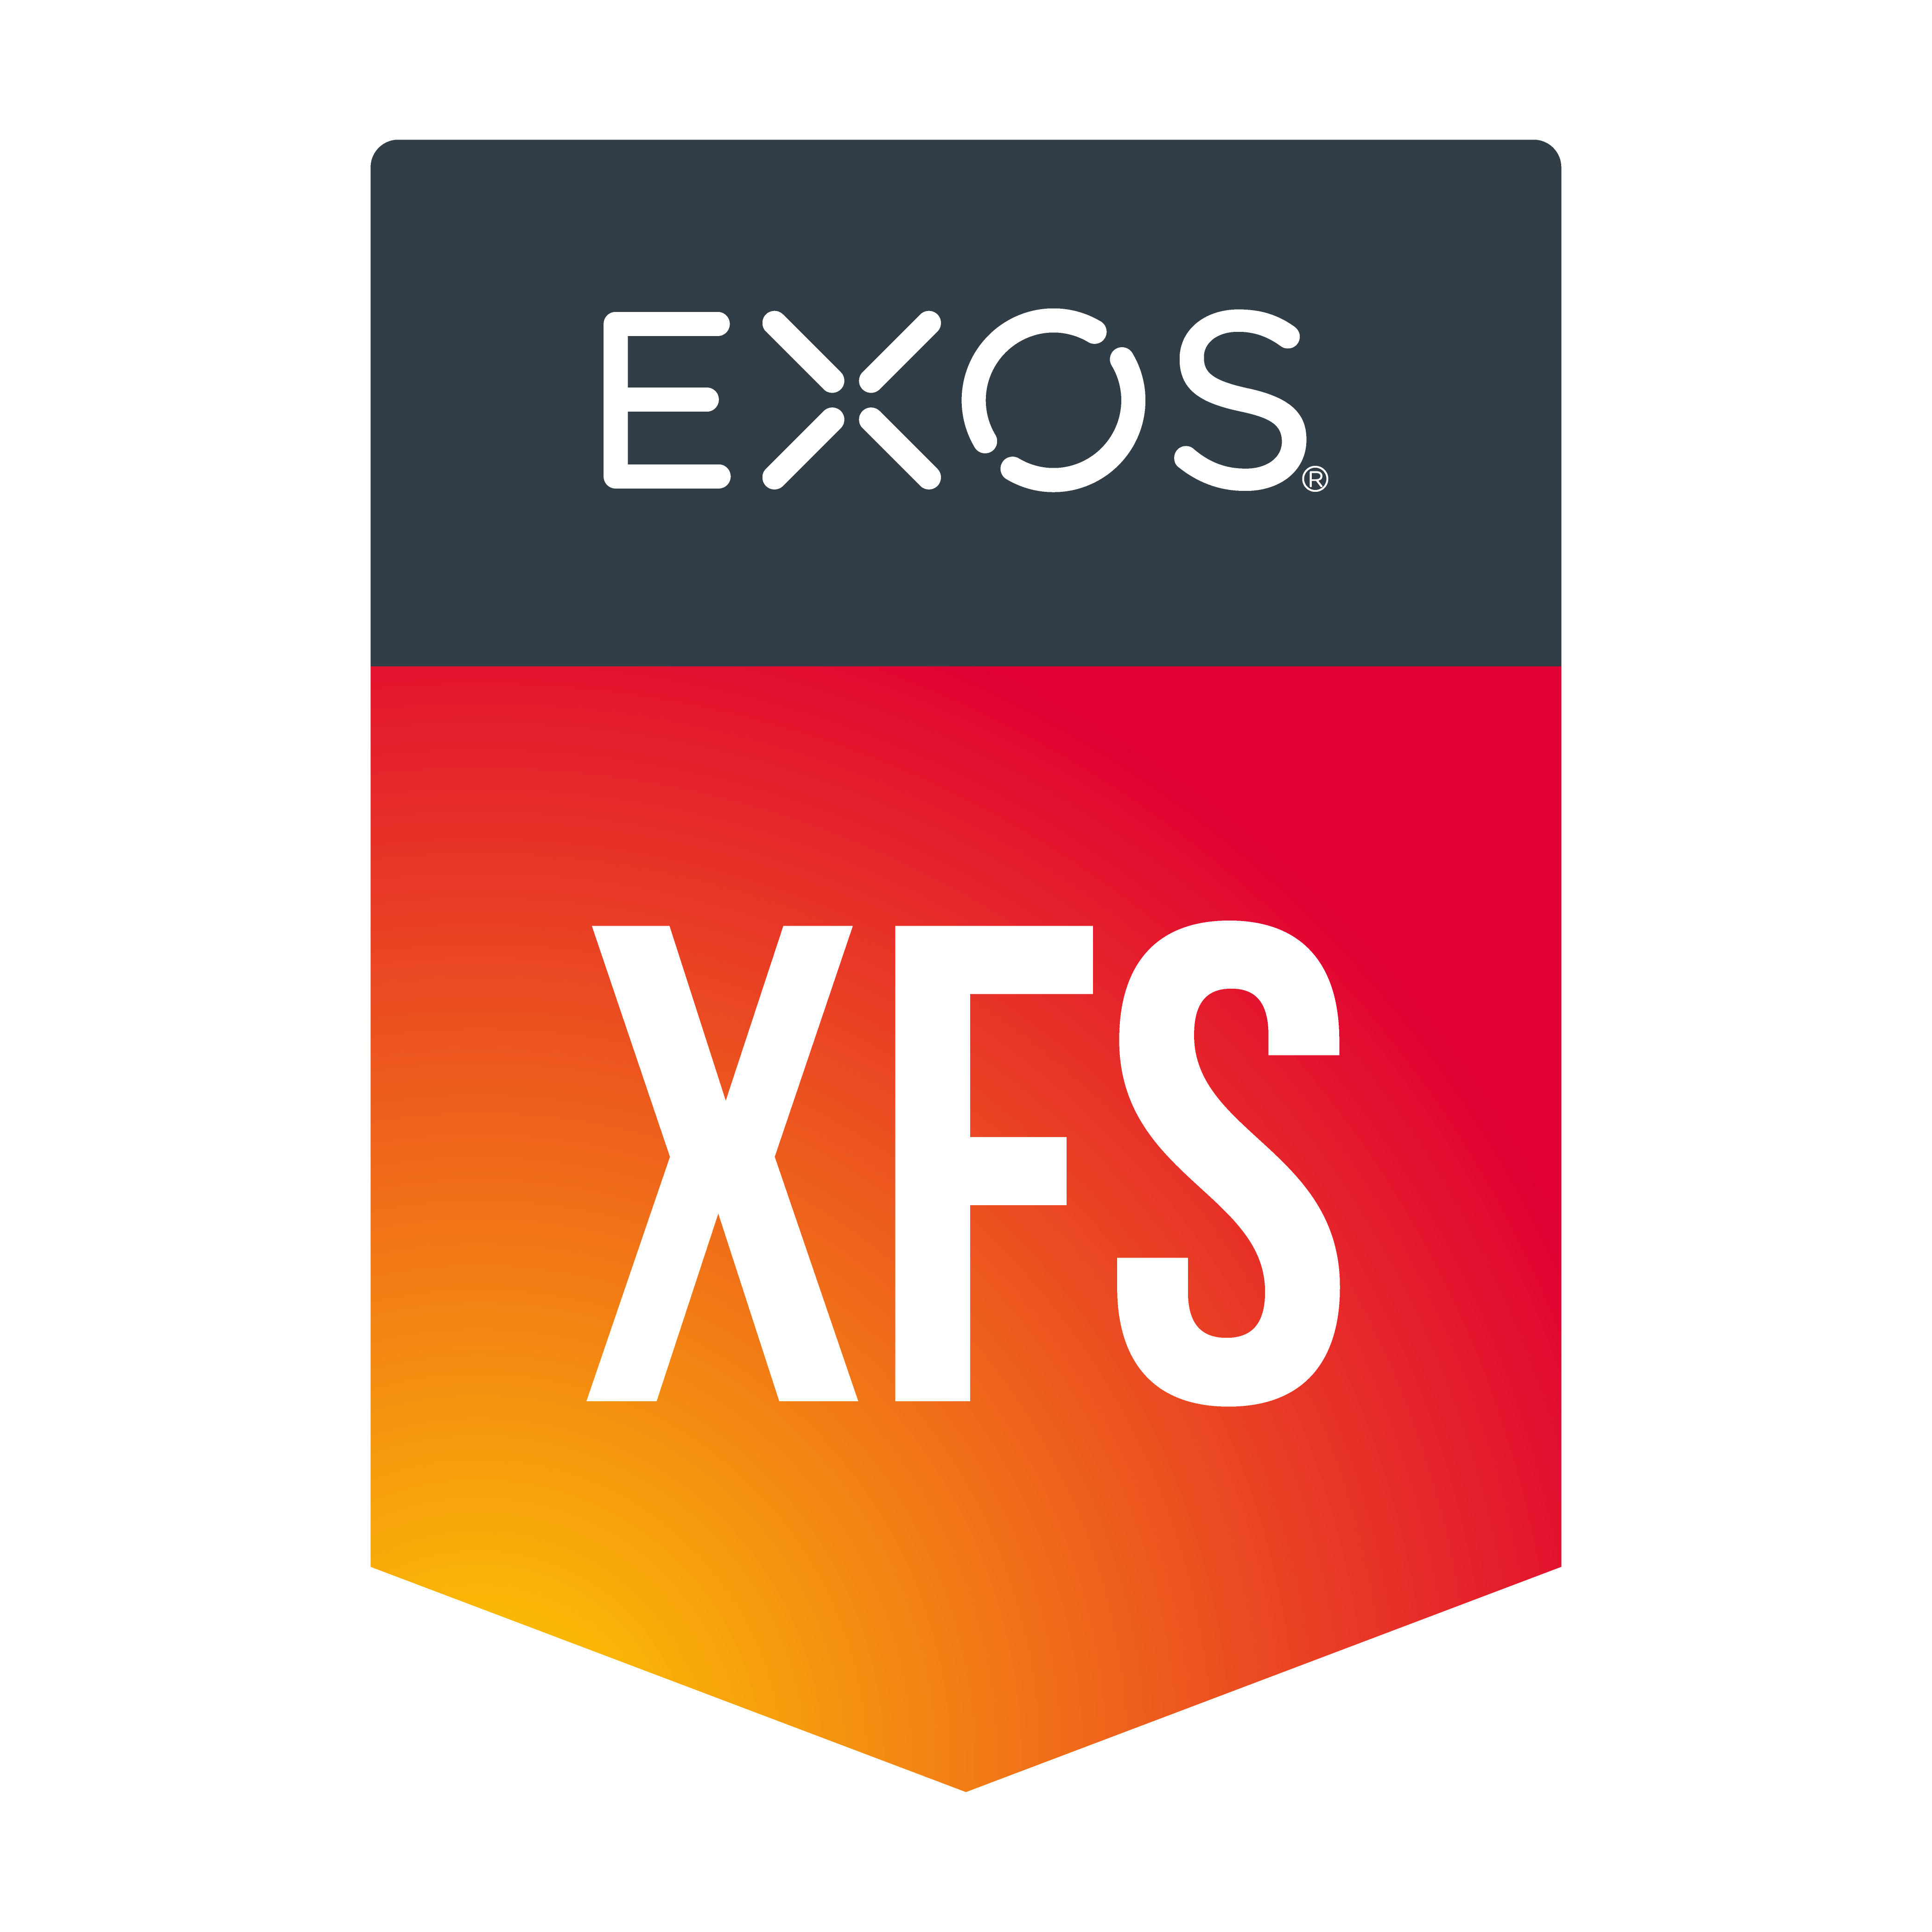 As an EXOS-Certified Fitness Specialist, I've learned the systems and methodology of EXOS and how to apply it to your needs as an athlete/client.